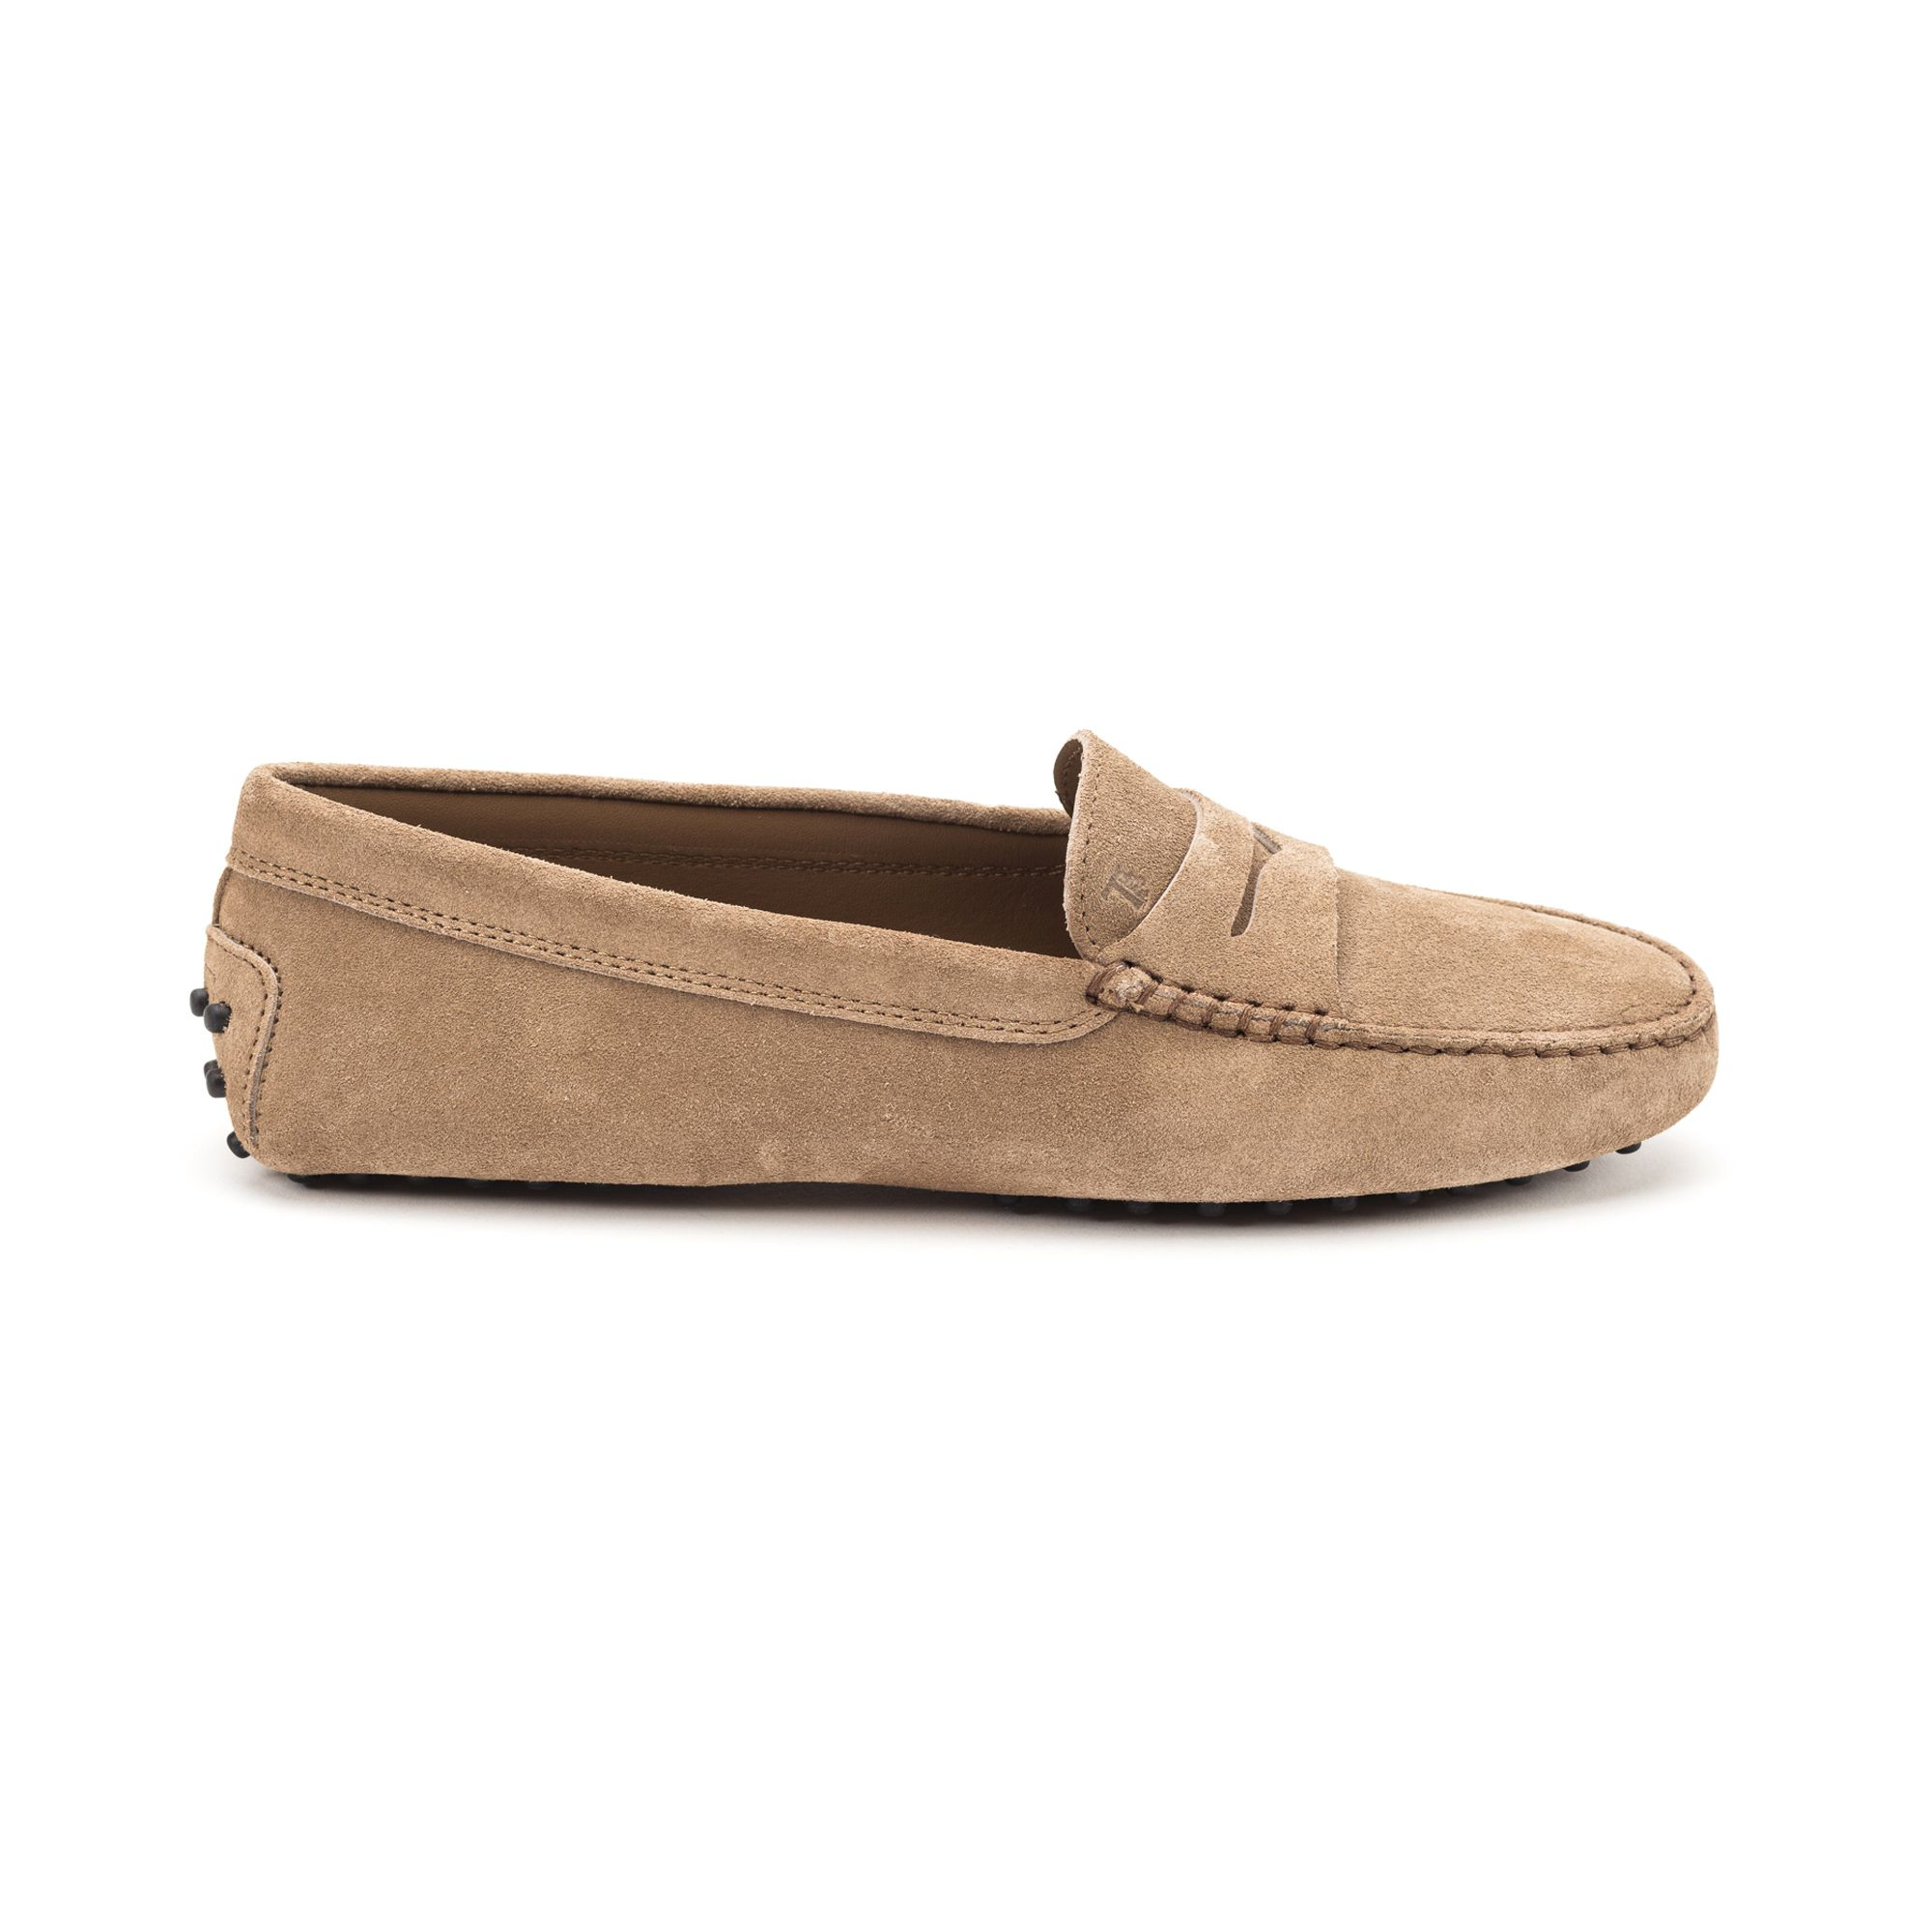 Tod's Women's Suede Loafers Moccasins Gommino In Beige